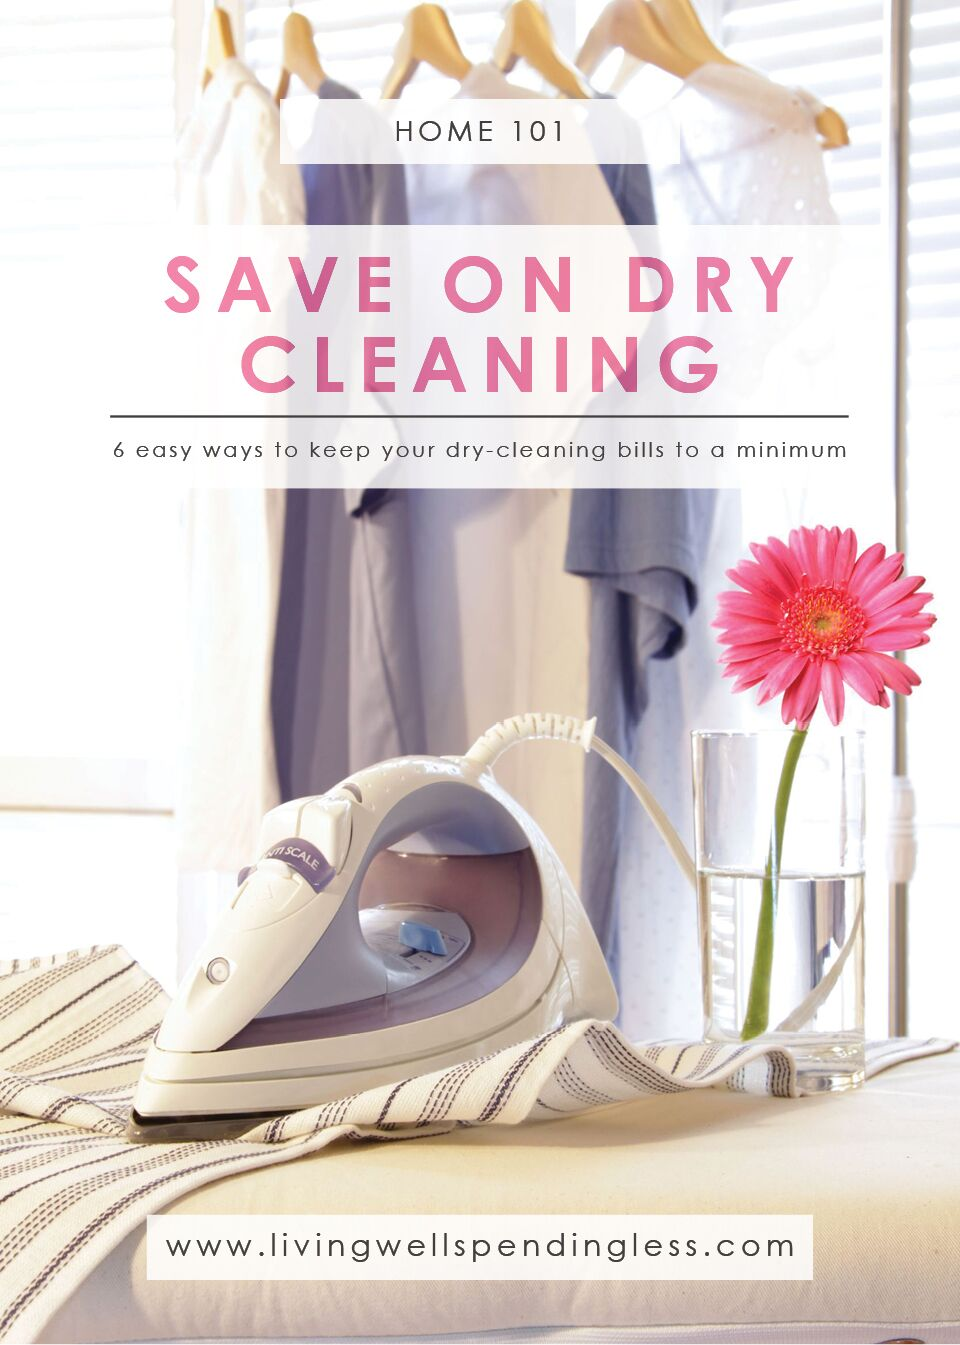 How to Save on Dry Cleaning | Laundry Tips | Clothes Care | Dry Cleaning Hacks